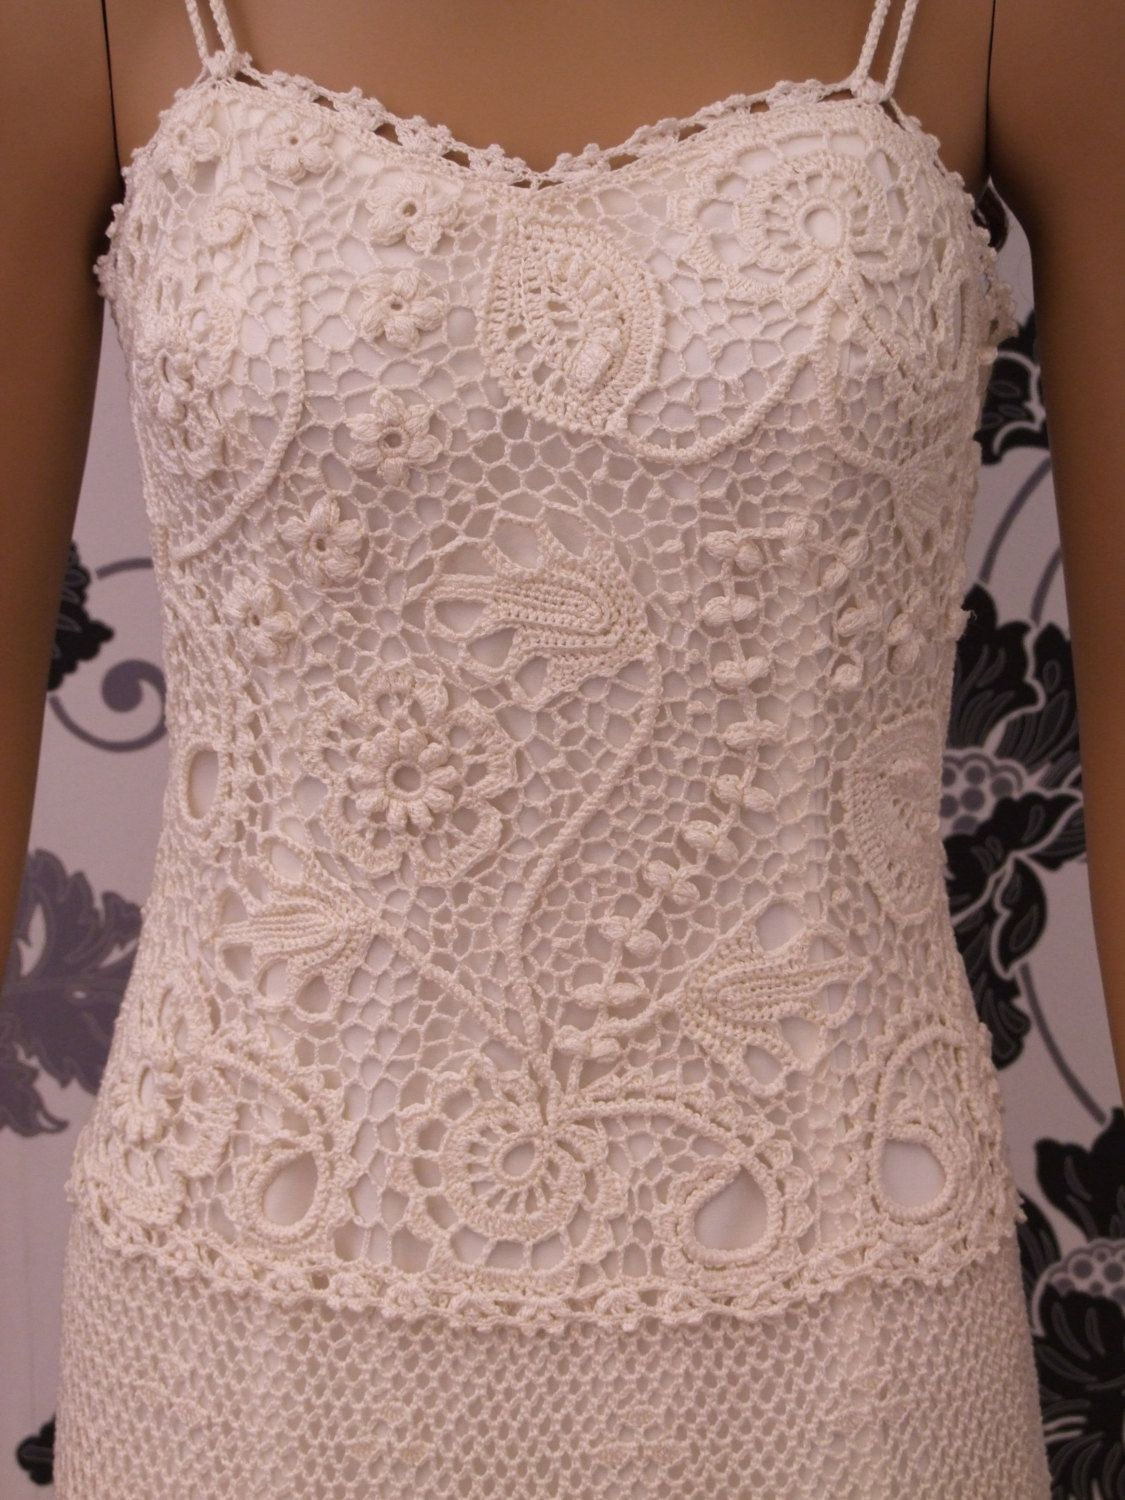 Pin de Olena Turchak en IRISH CROCHET LACE | Pinterest | Encaje ...